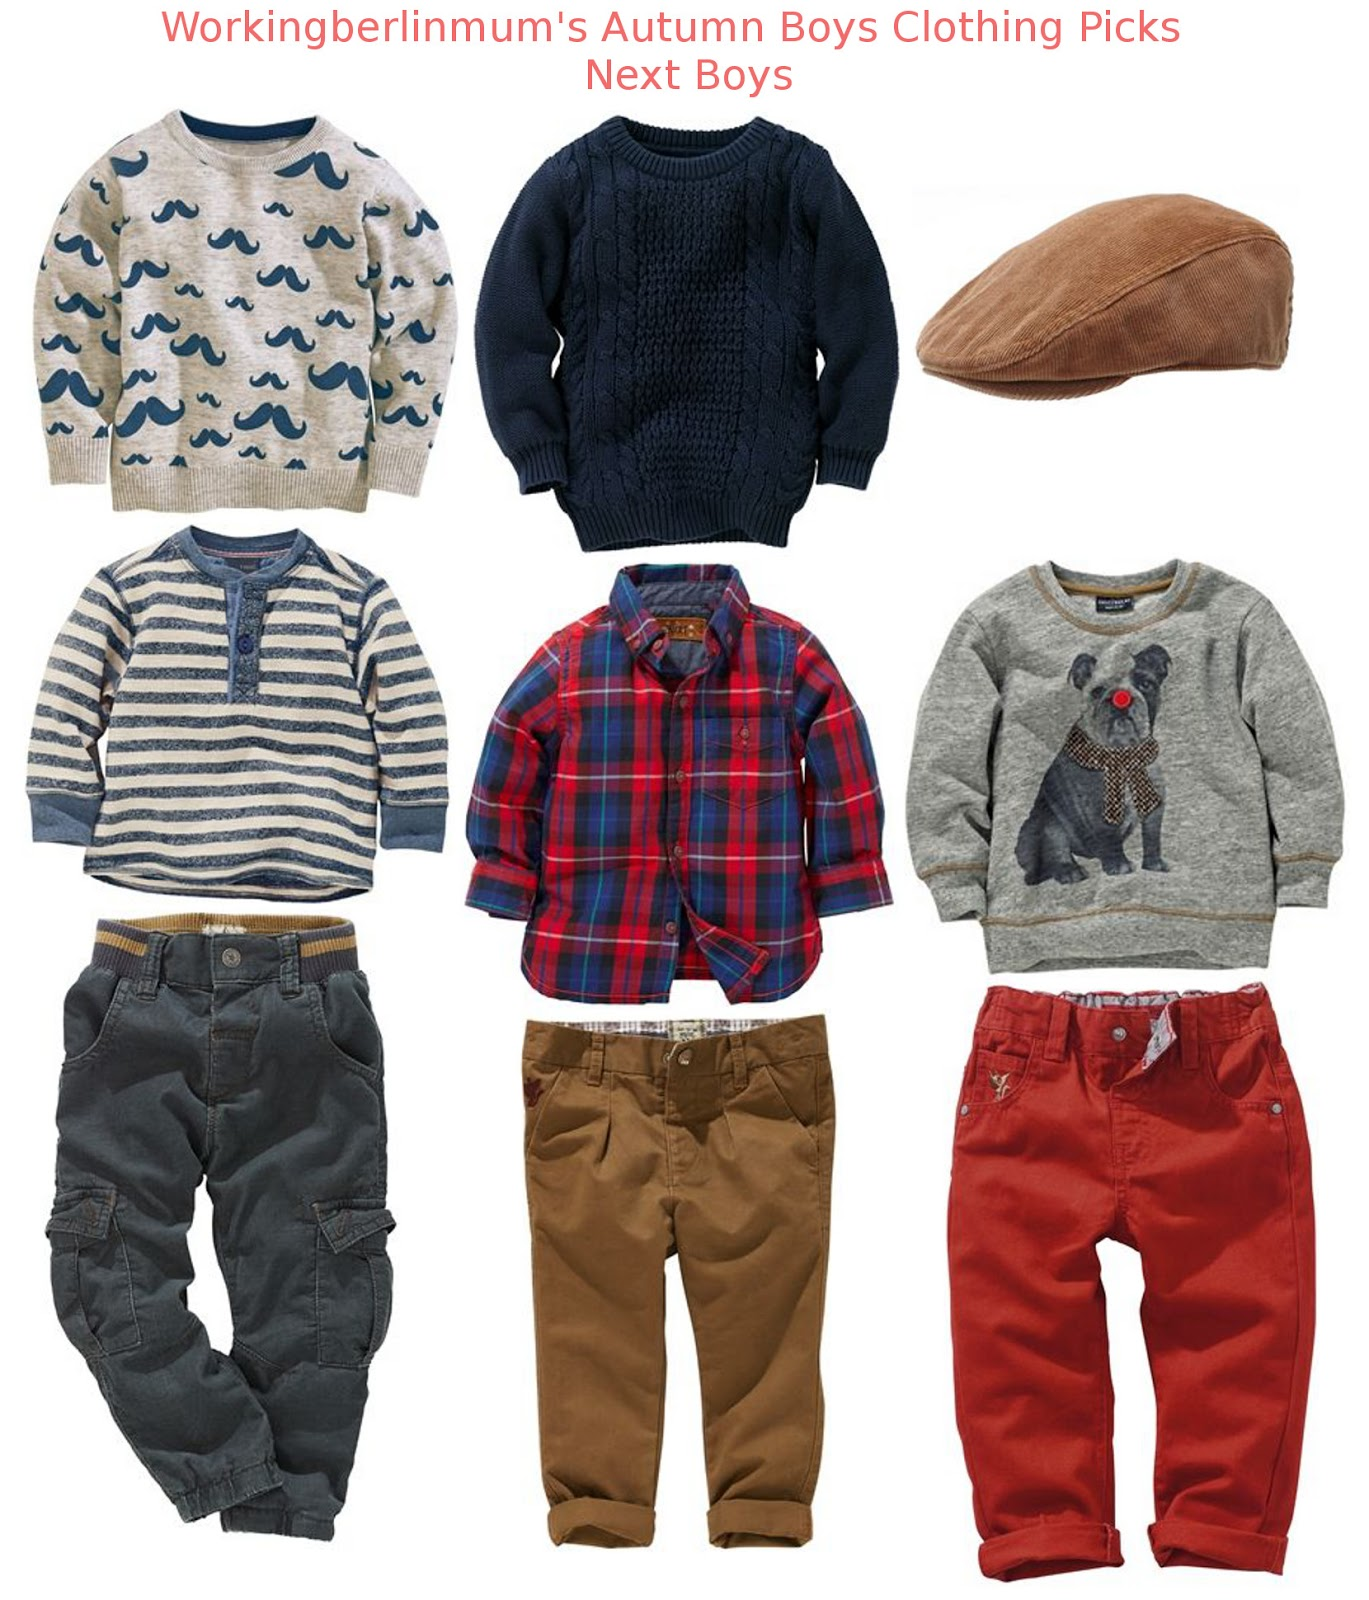 Workingberlinmum Autumn Big Boys 3mths 6yrs Fashion My Next Picks